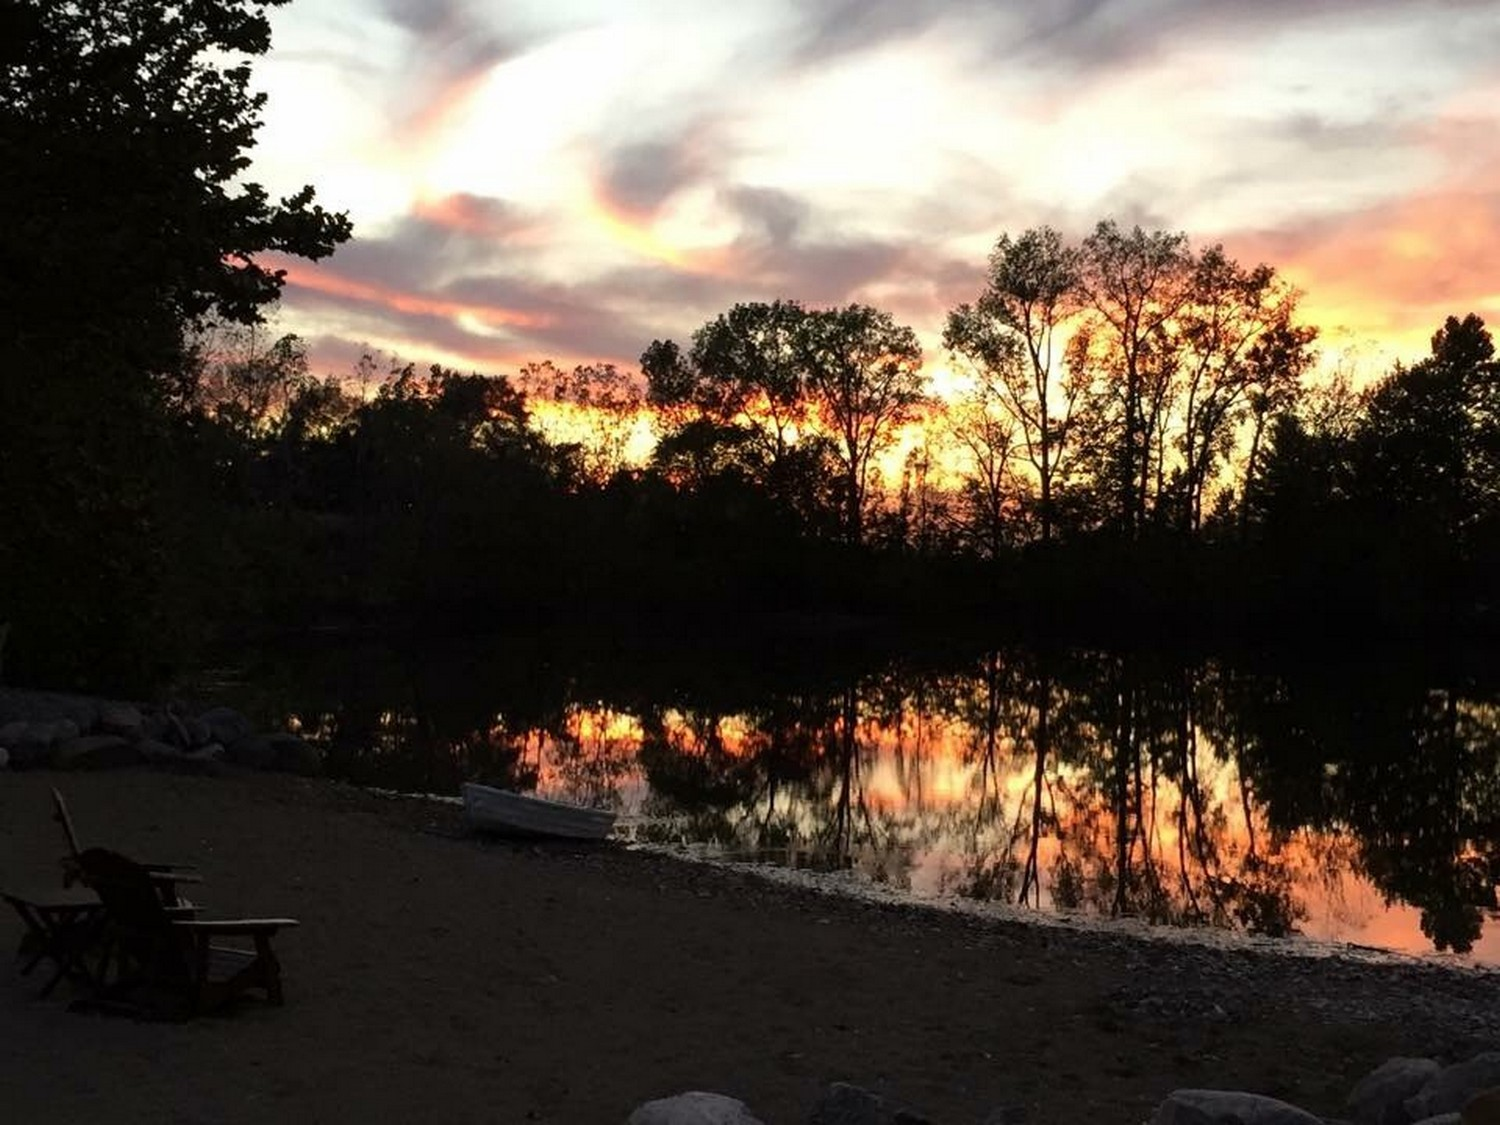 Sunset View Over The Pond